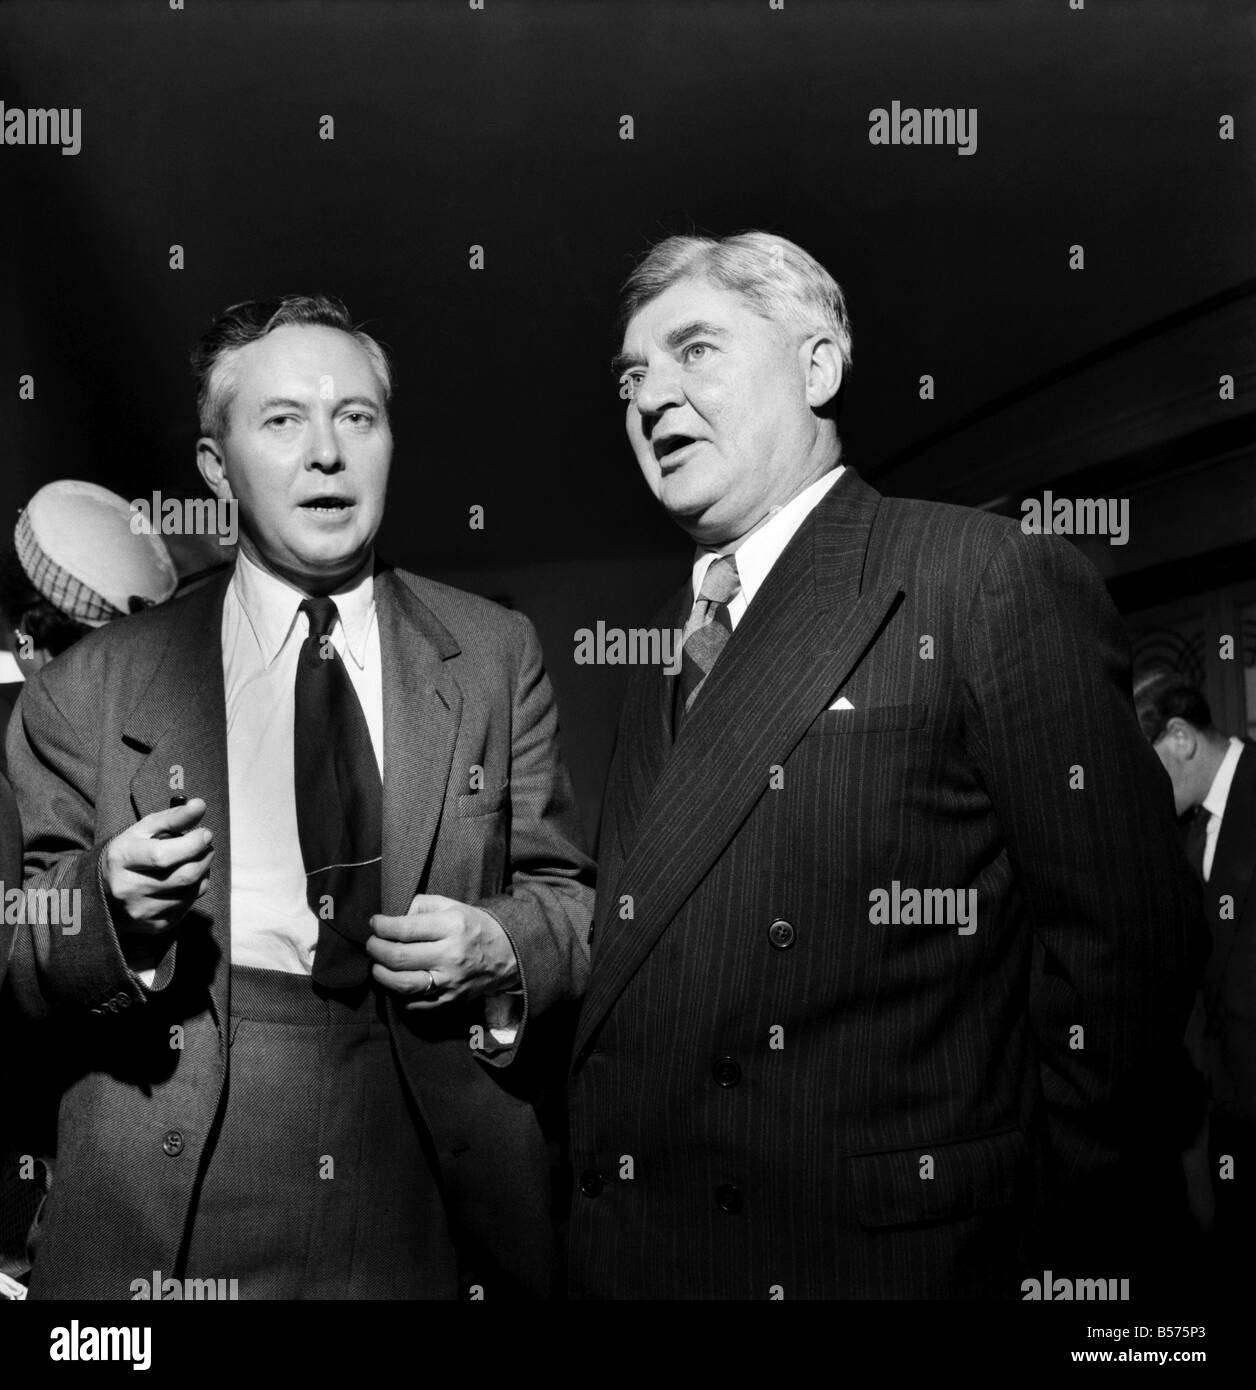 Labour Party Conference 1953: Nye Bevan and Harold Wilson. September 1953 D5828-007 - Stock Image